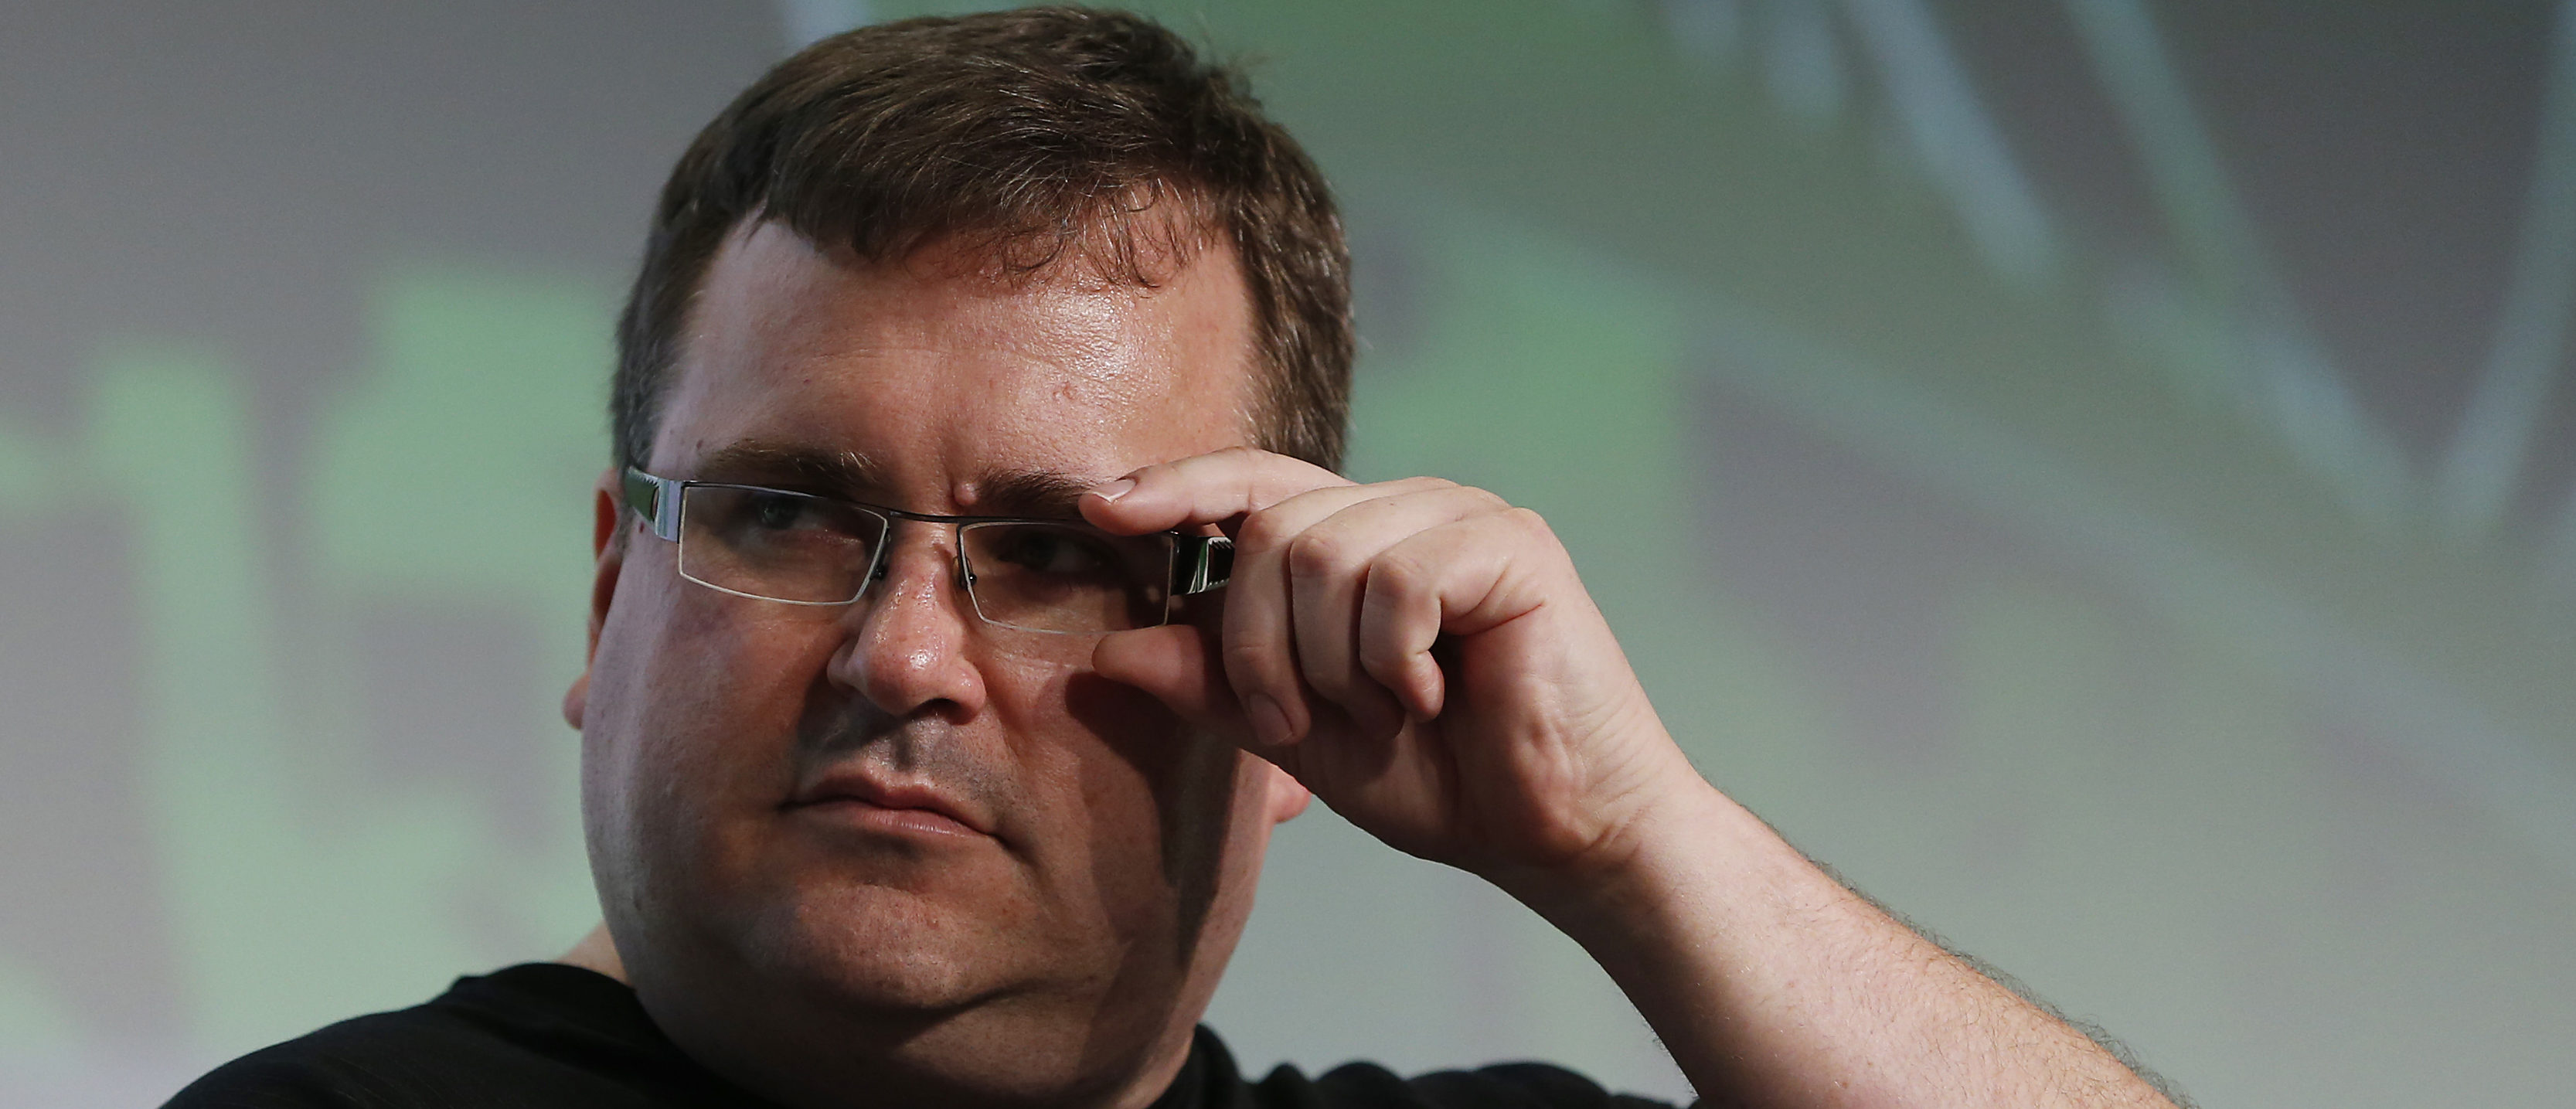 Reid Hoffman, executive chairman of LinkedIn, speaks on stage during day one of TechCrunch Disrupt SF 2012 event at the San Francisco Design Center Concourse in San Francisco, California September 10, 2012 REUTERS/Stephen Lam (UNITED STATES - Tags: BUSINESS SCIENCE TECHNOLOGY) - GM1E89B0CSA01